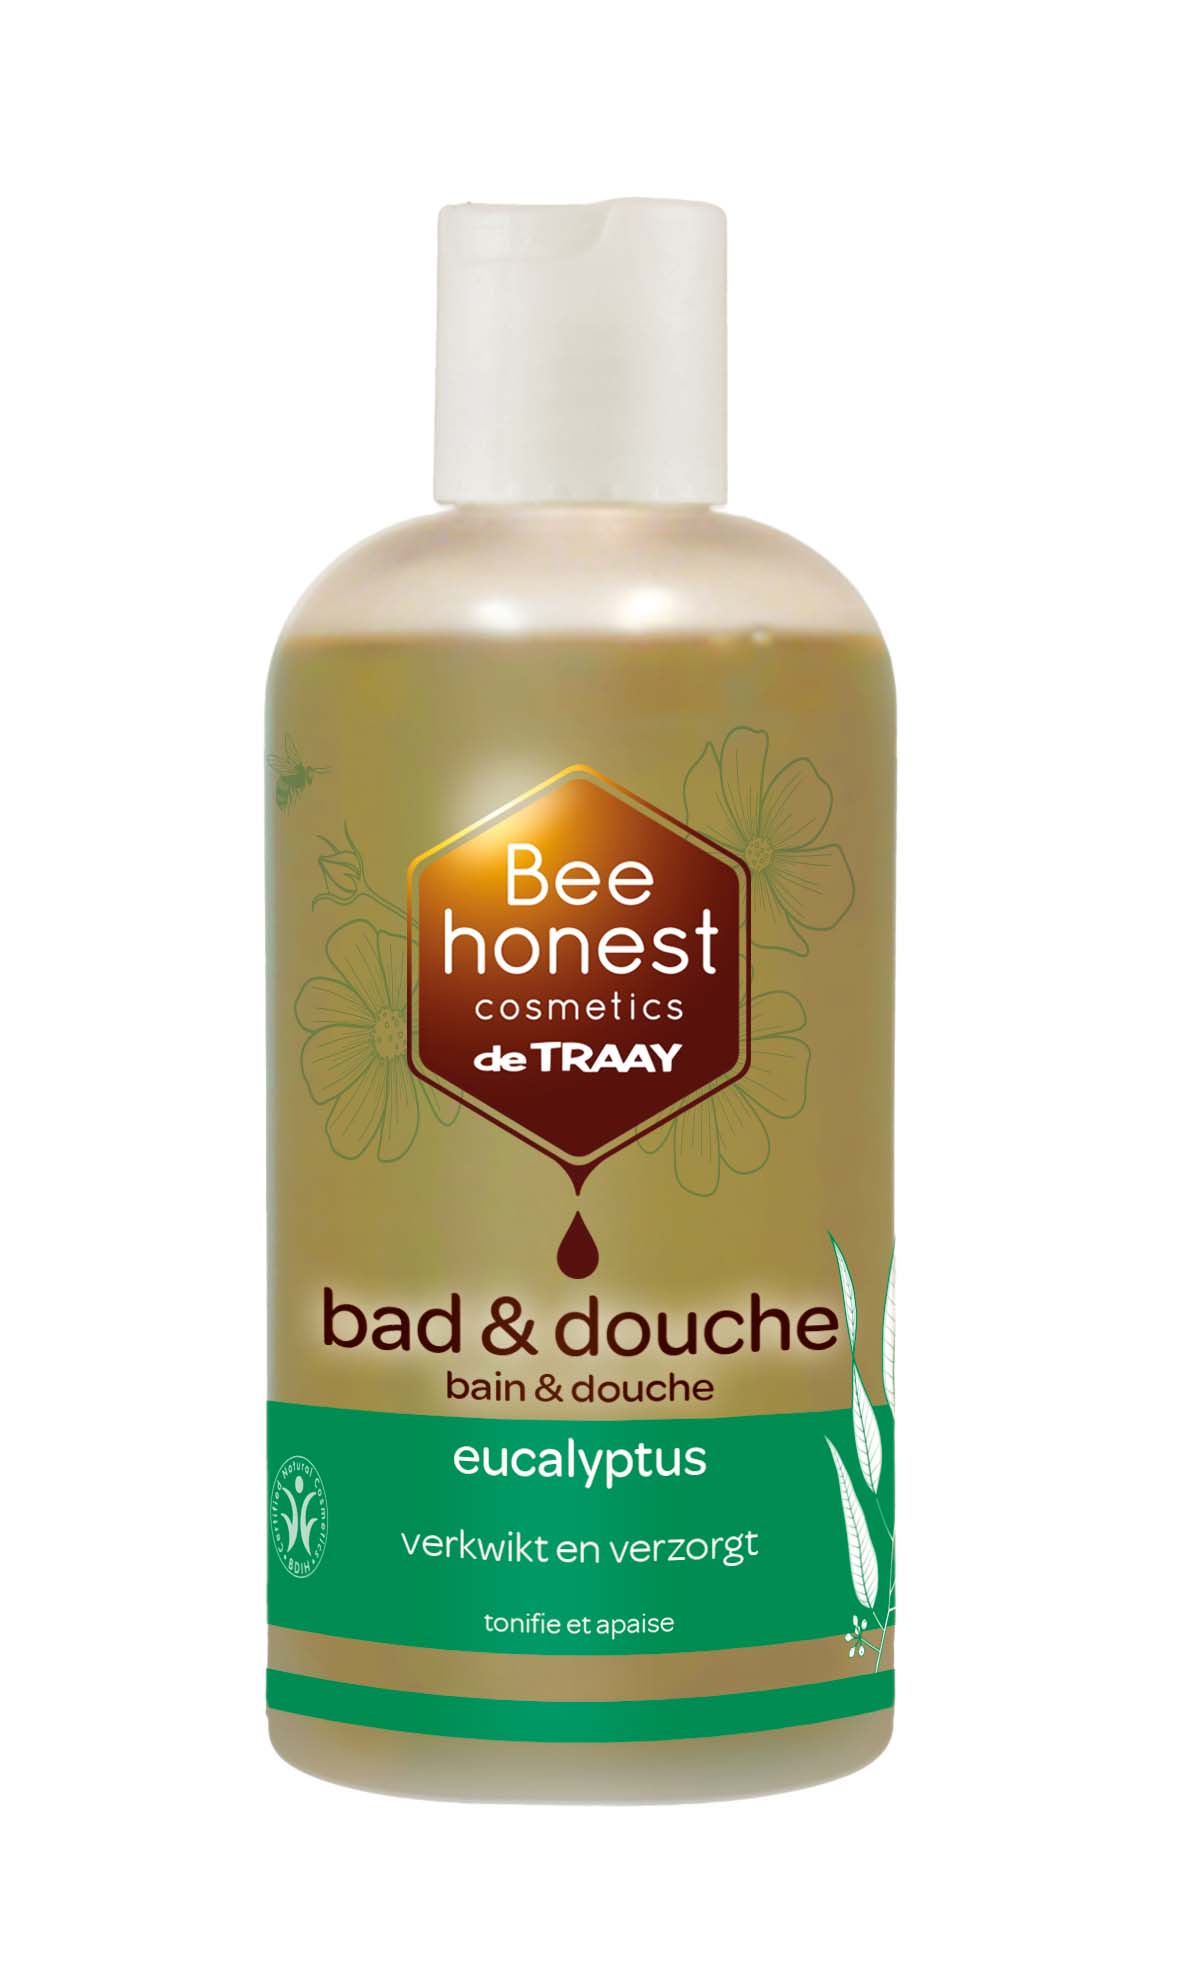 Bad & douche eucalyptus 250ml